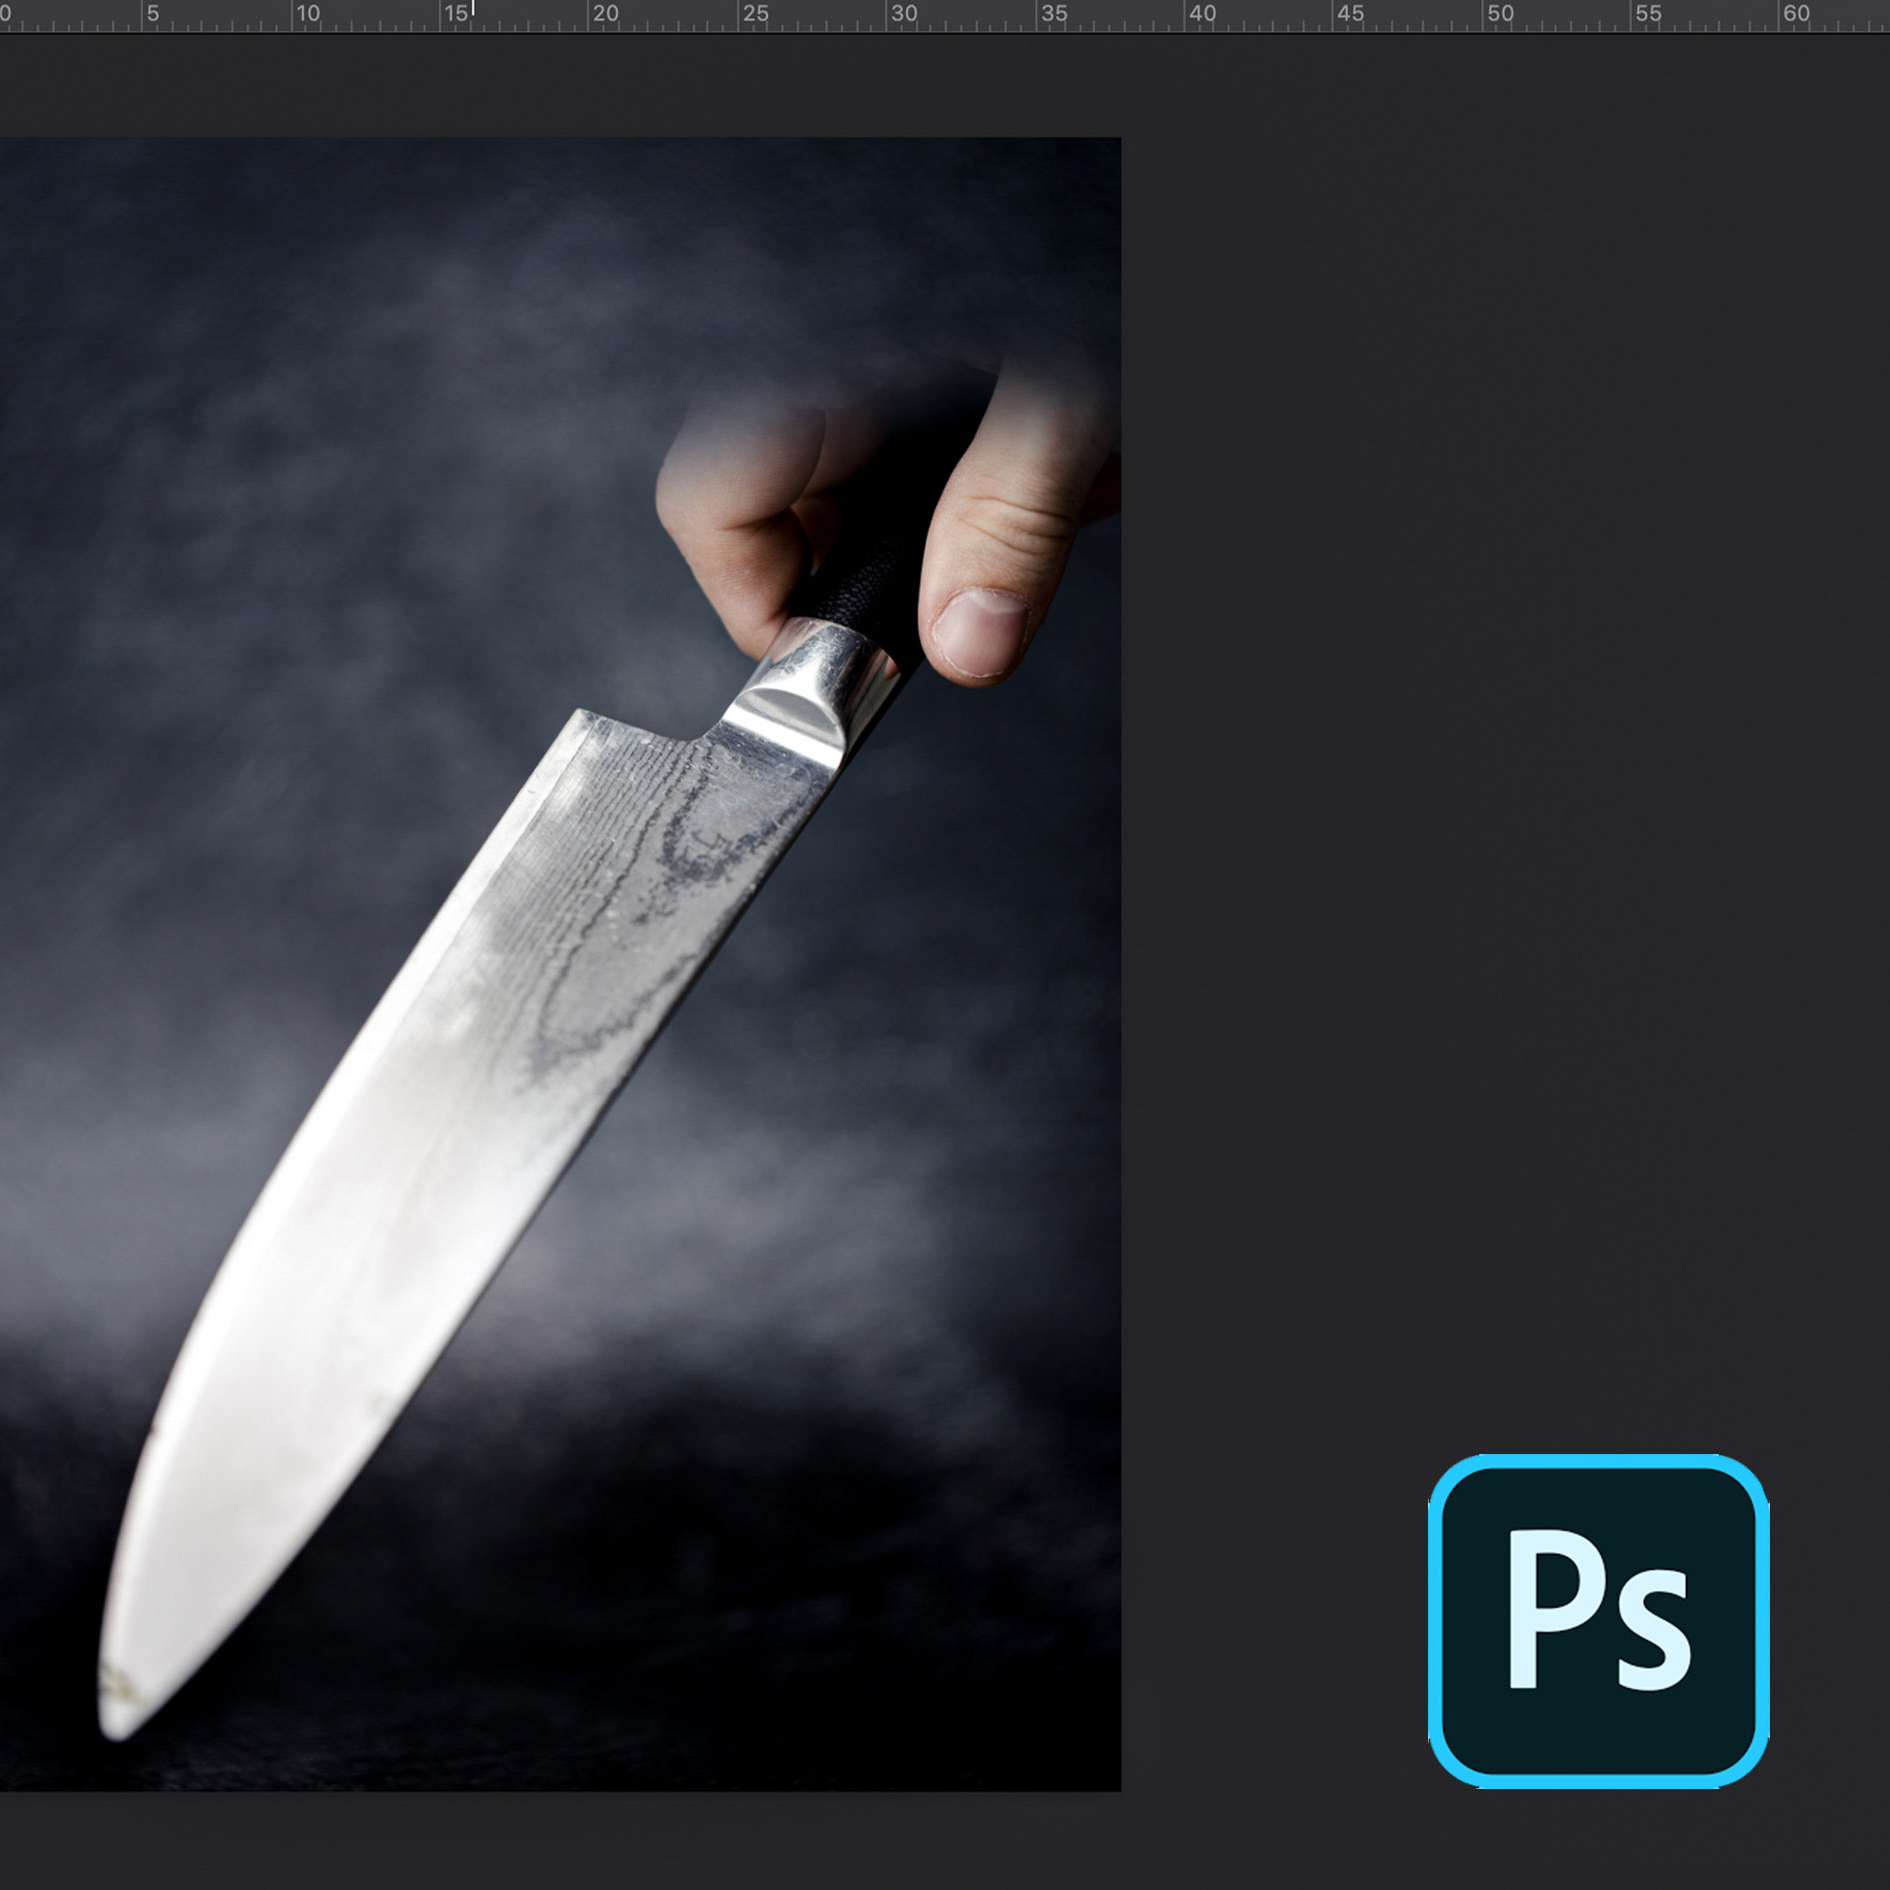 How to make floating object by using photoshop